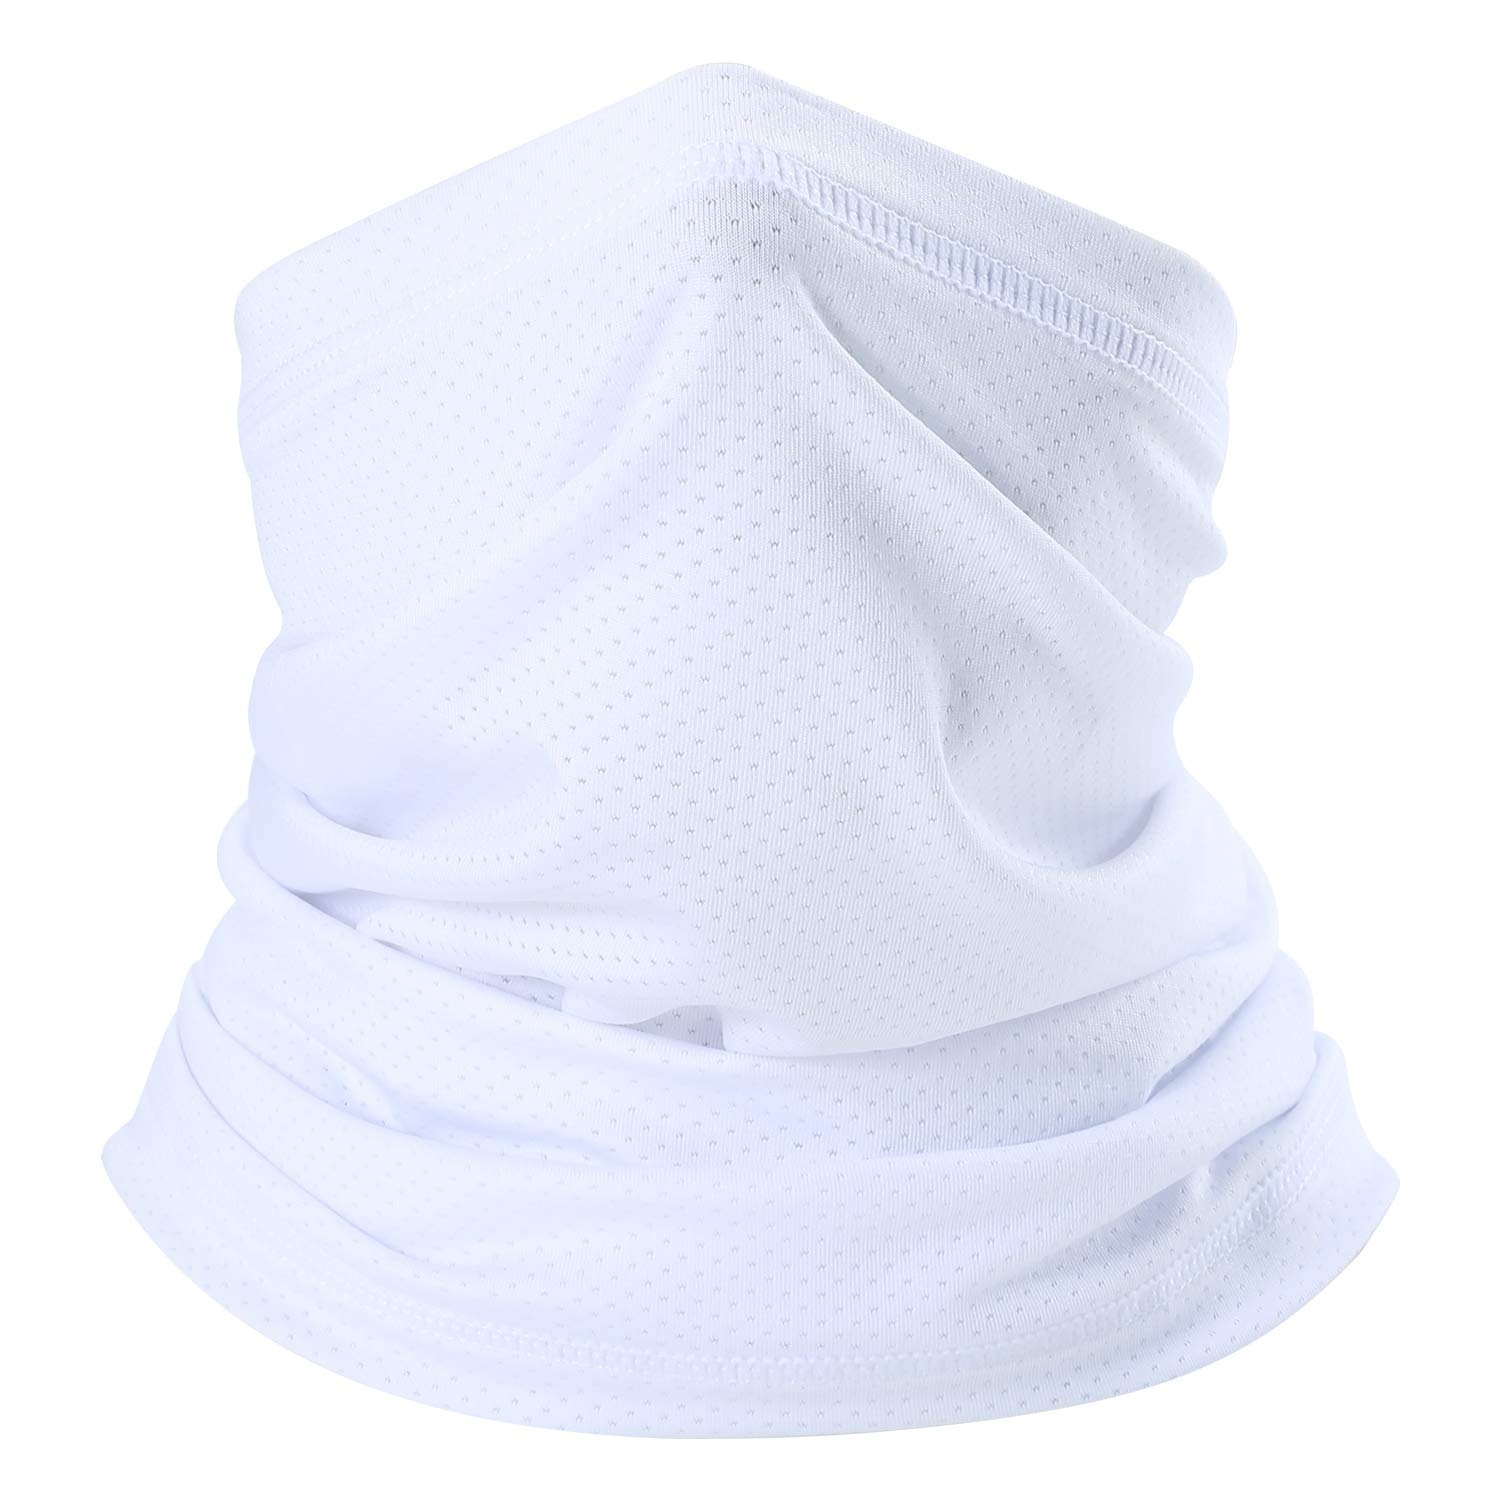 Outdoor Fishing LAYOPO Summer Face Scarf Mask Breathable Sun UV Protection Neck Gaiter Thin Windproof Face Mask Headwear for Hiking Cycling Running